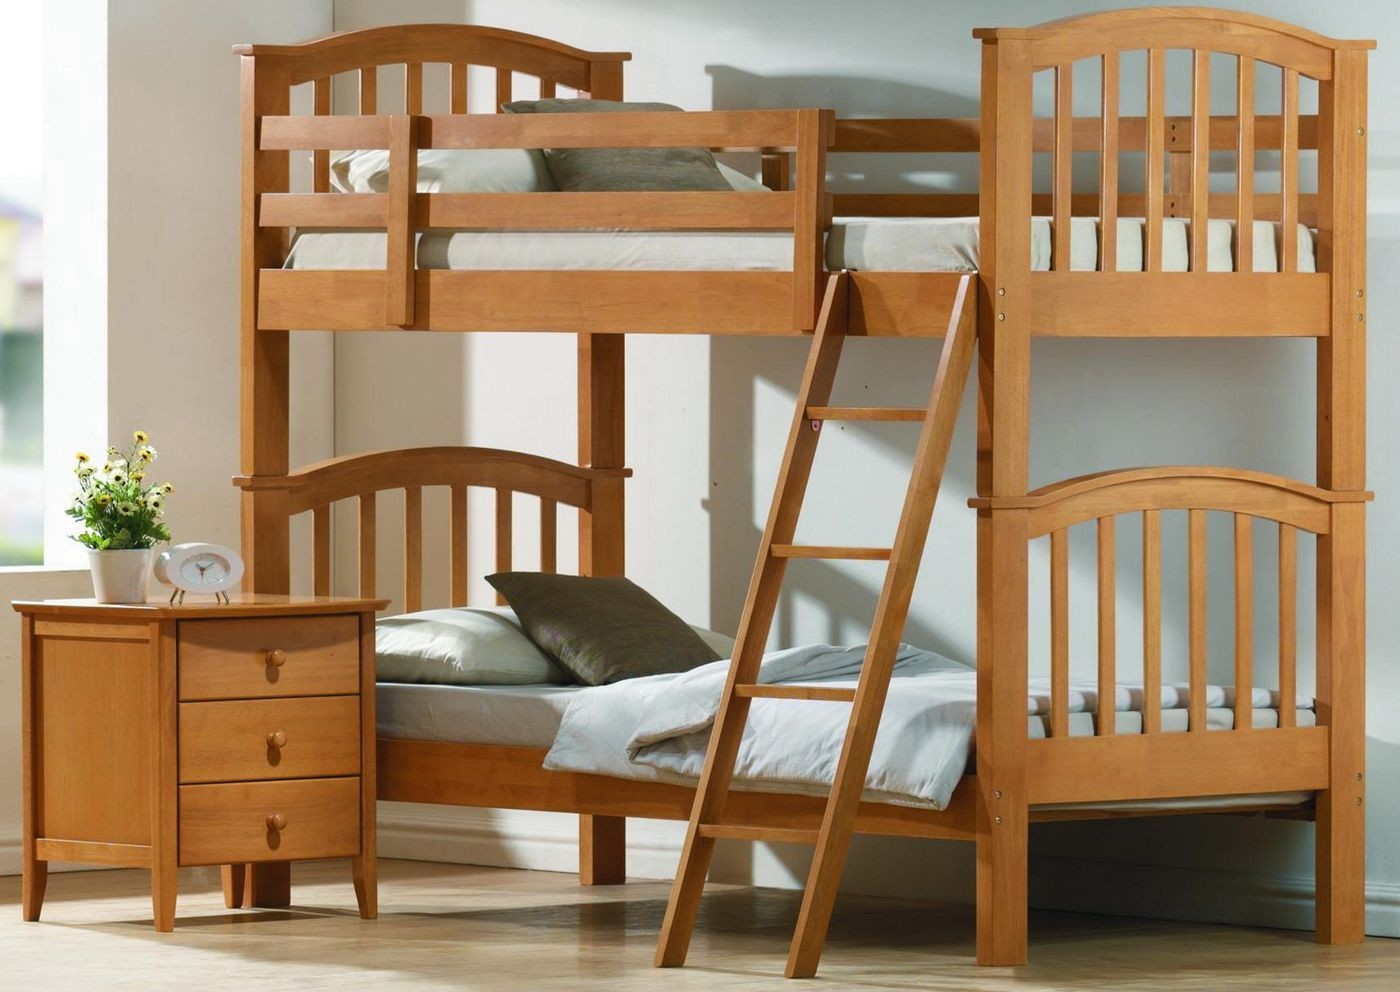 Various Designs of Wooden Bunk Beds to Place in the